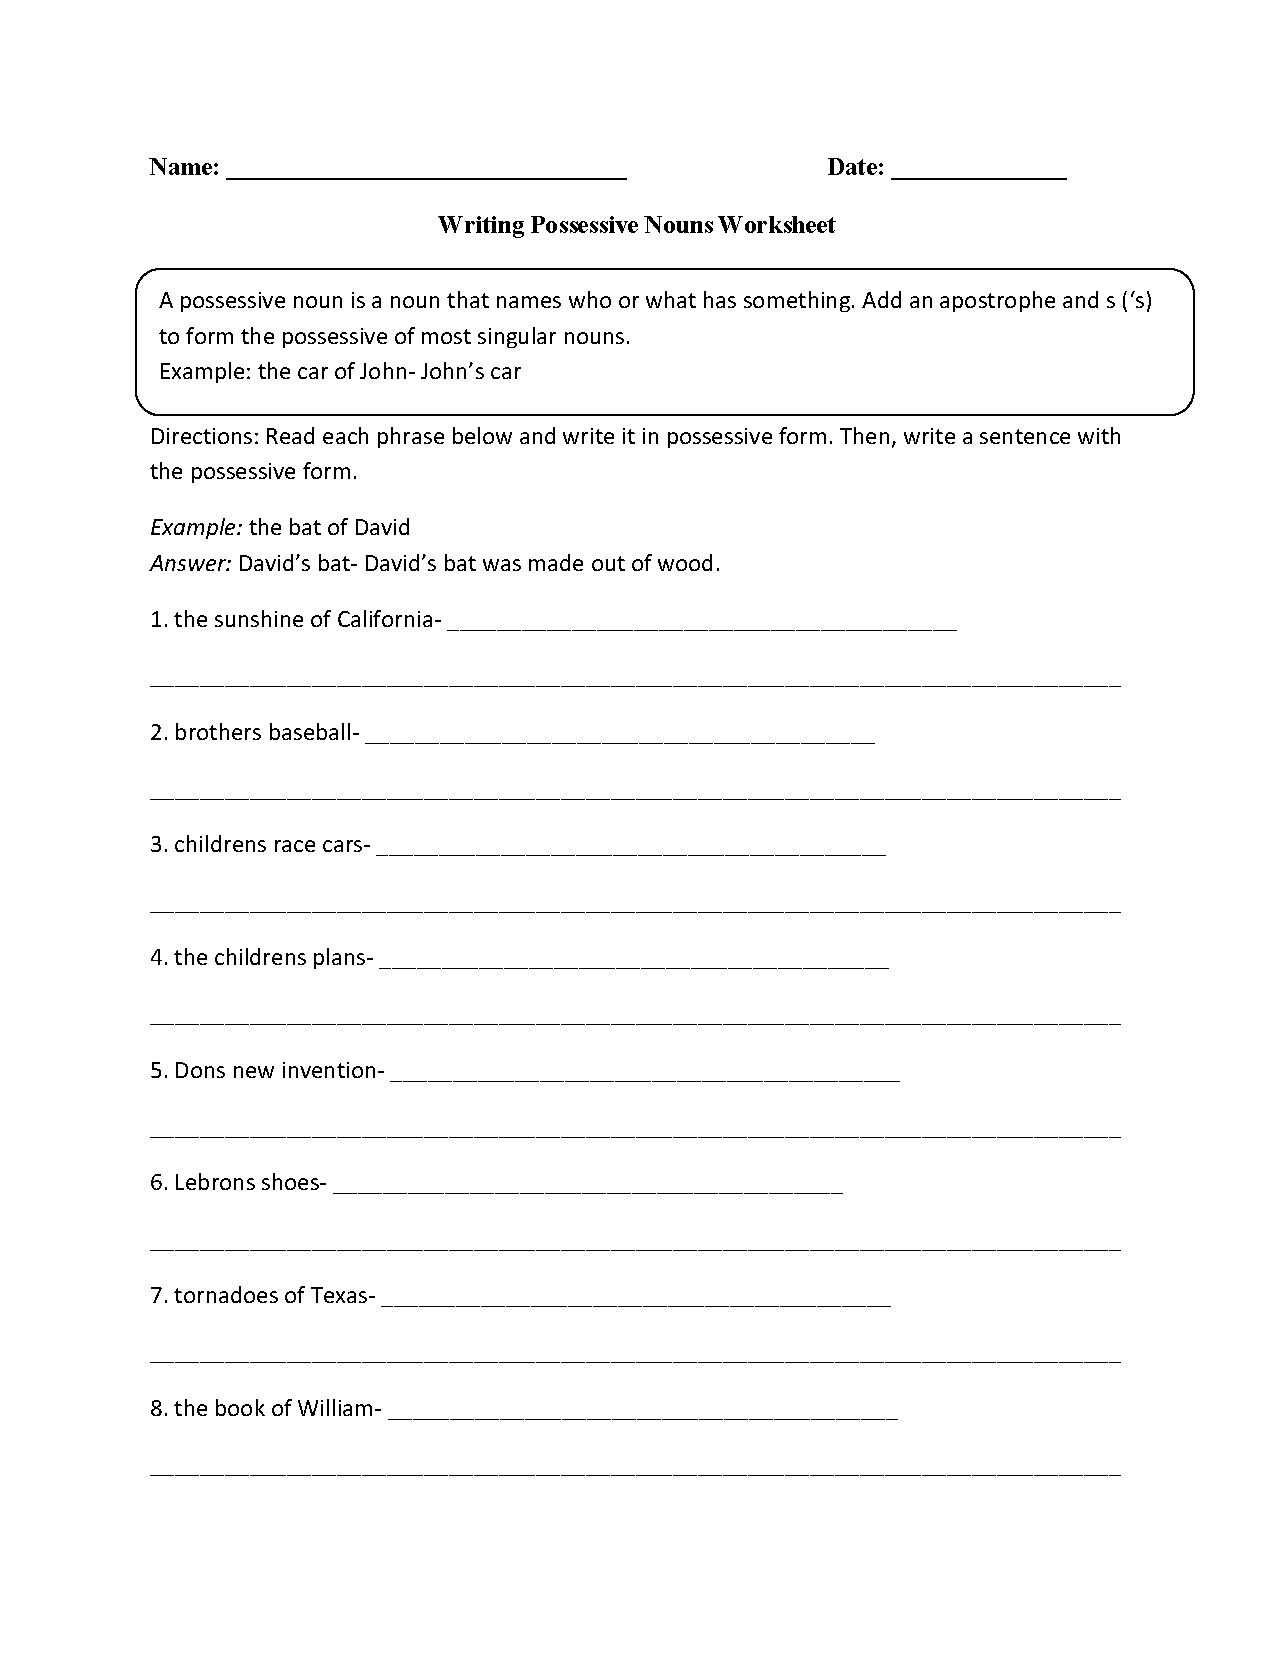 hight resolution of Possessive Nouns Worksheets   Writing with Possessive Nouns Worksheet